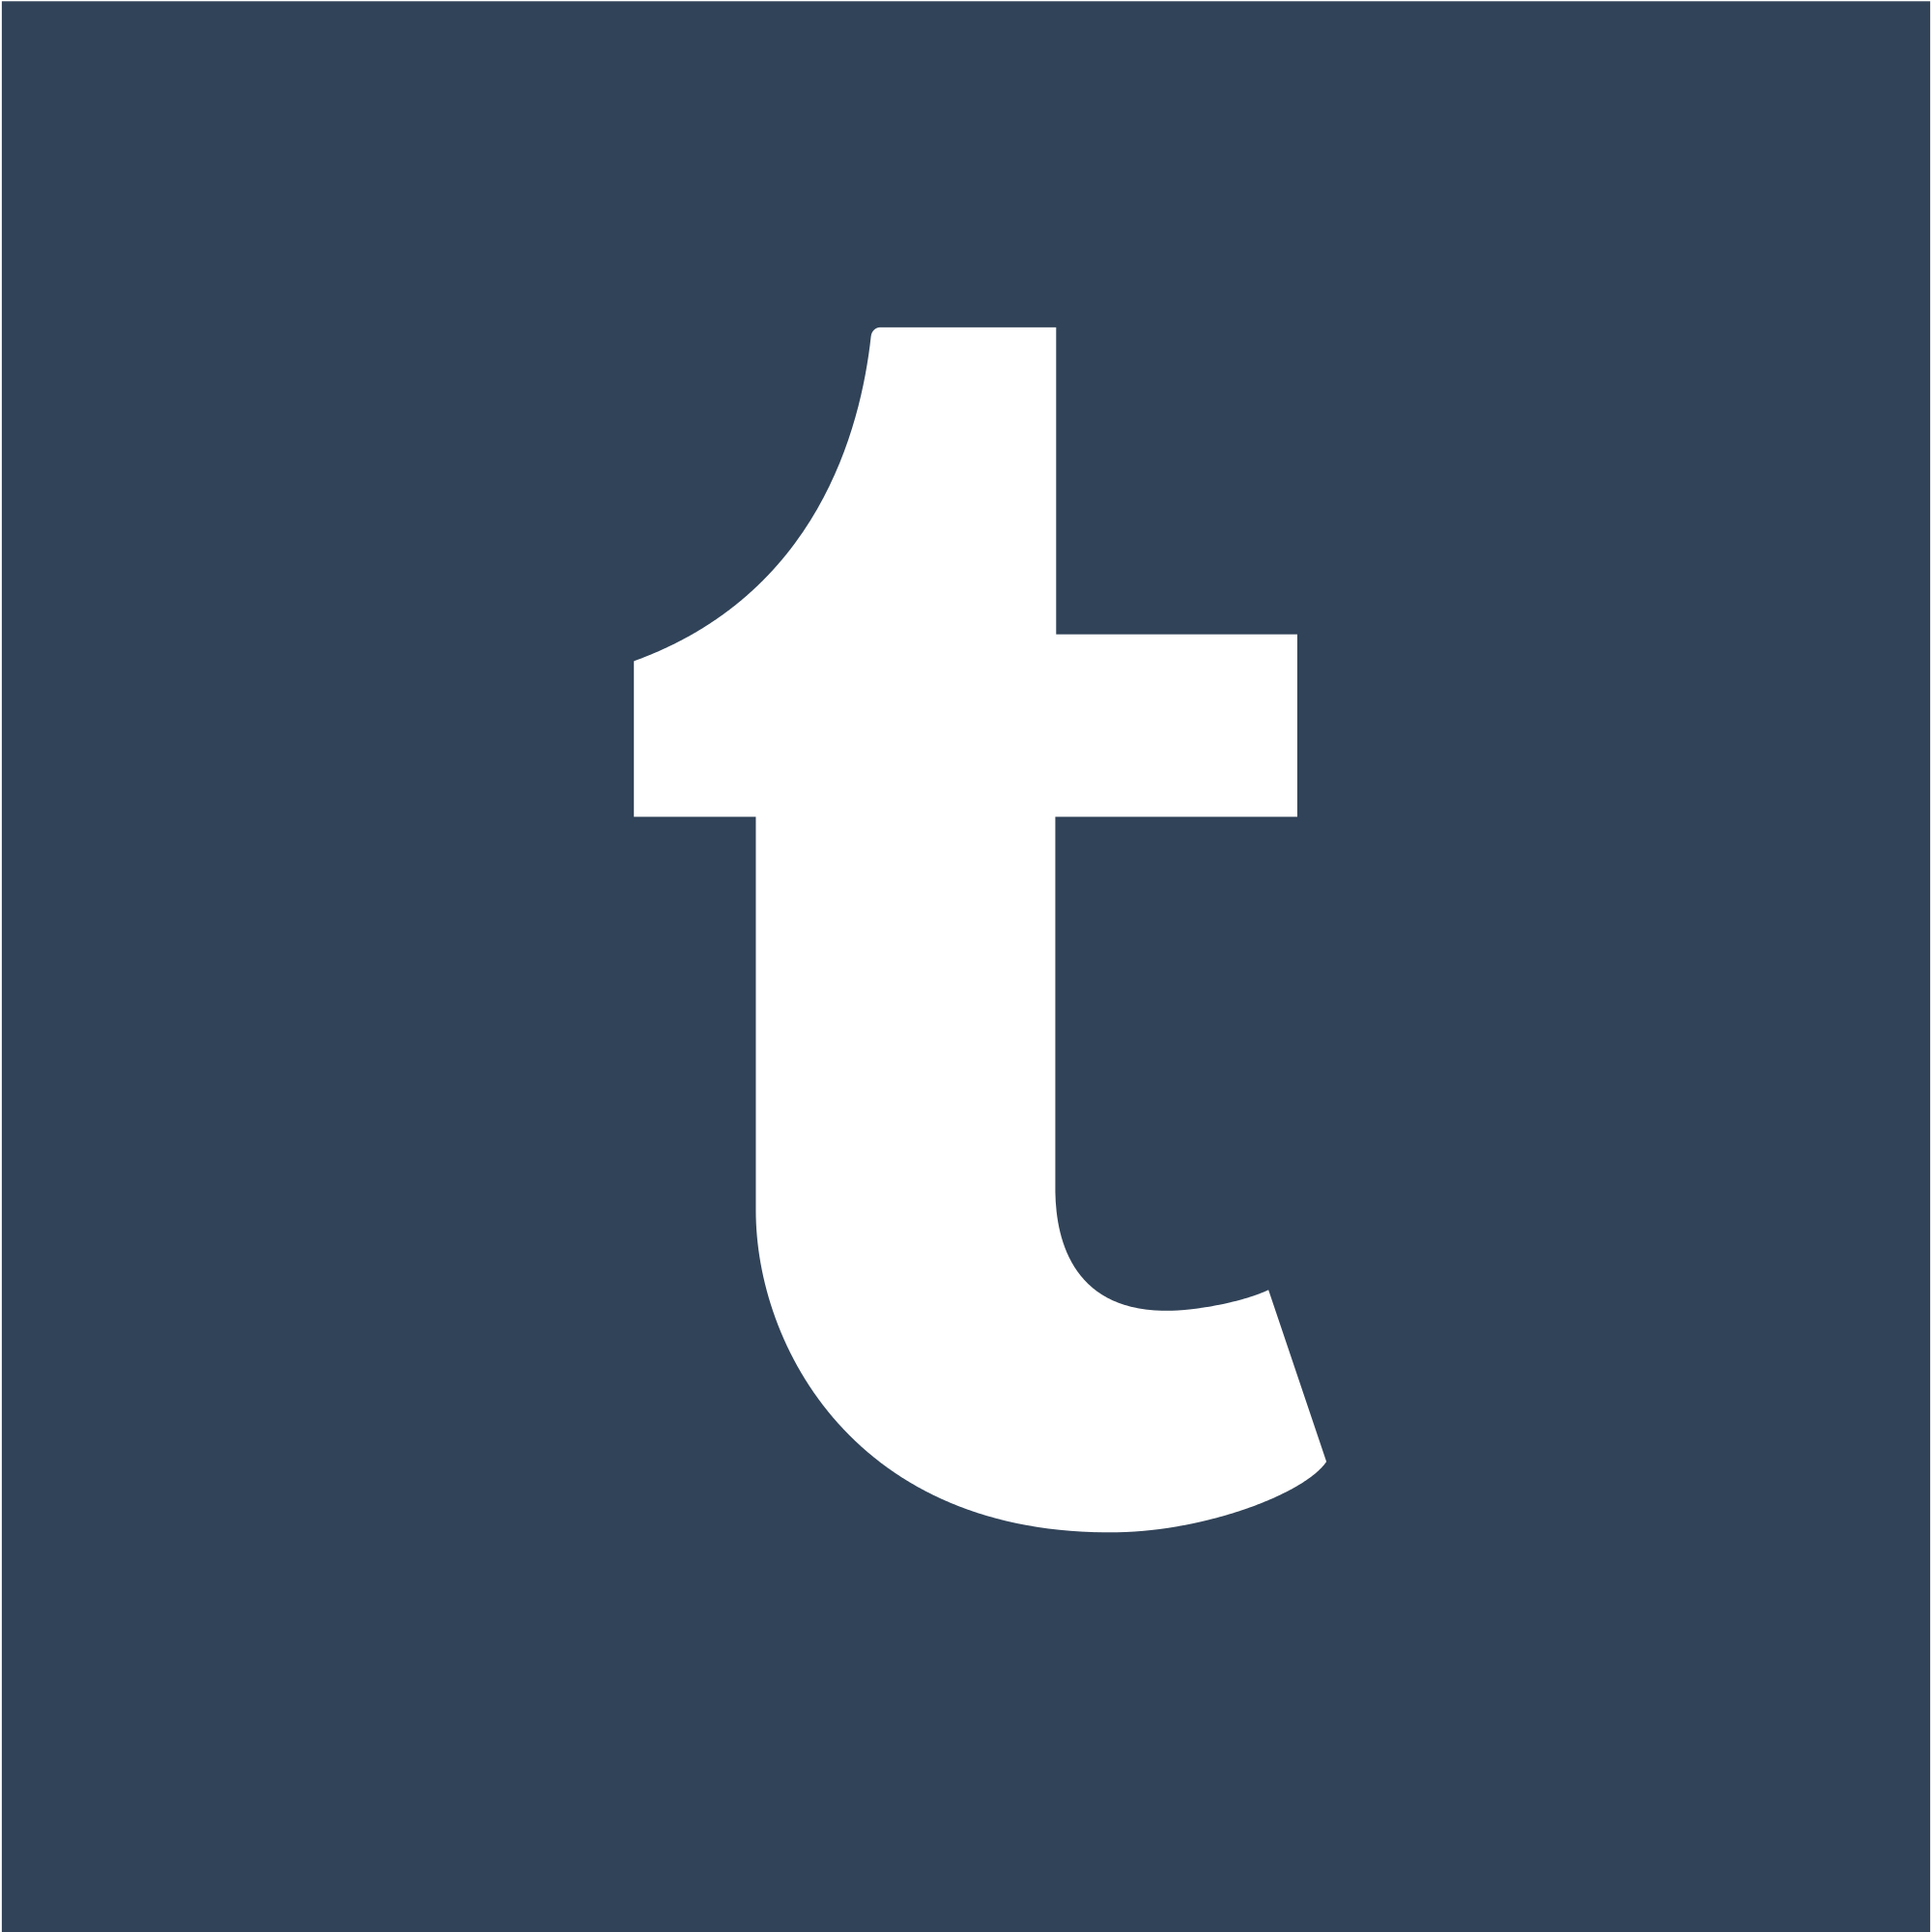 Tumblr is back on Apple's app store